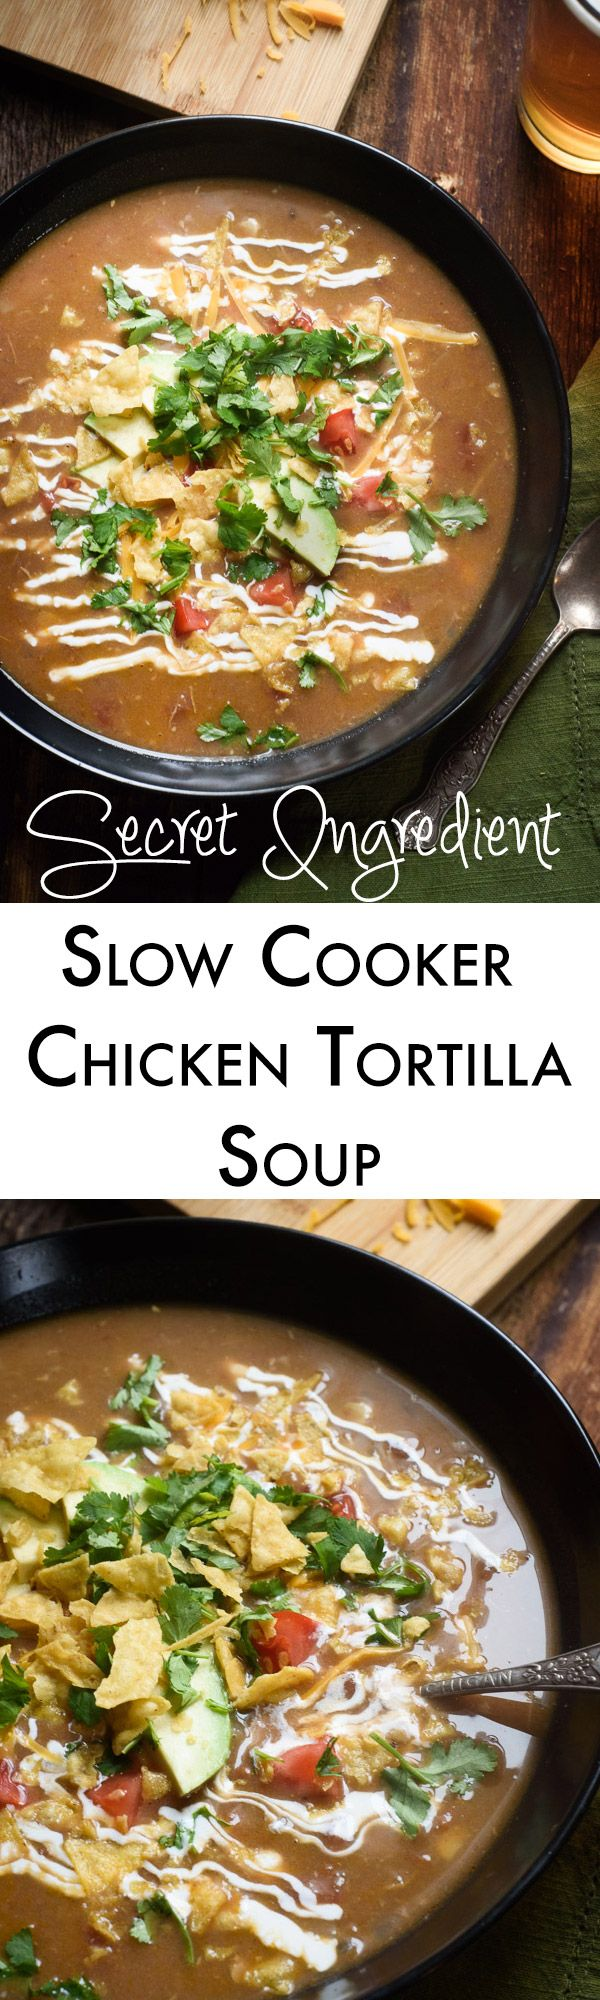 Slow cooker chicken tortilla soup is a family favorite! Our secret ingredient makes it thicker and creamier but keeps it healthy too! abite.co/sc-tortilla-soup